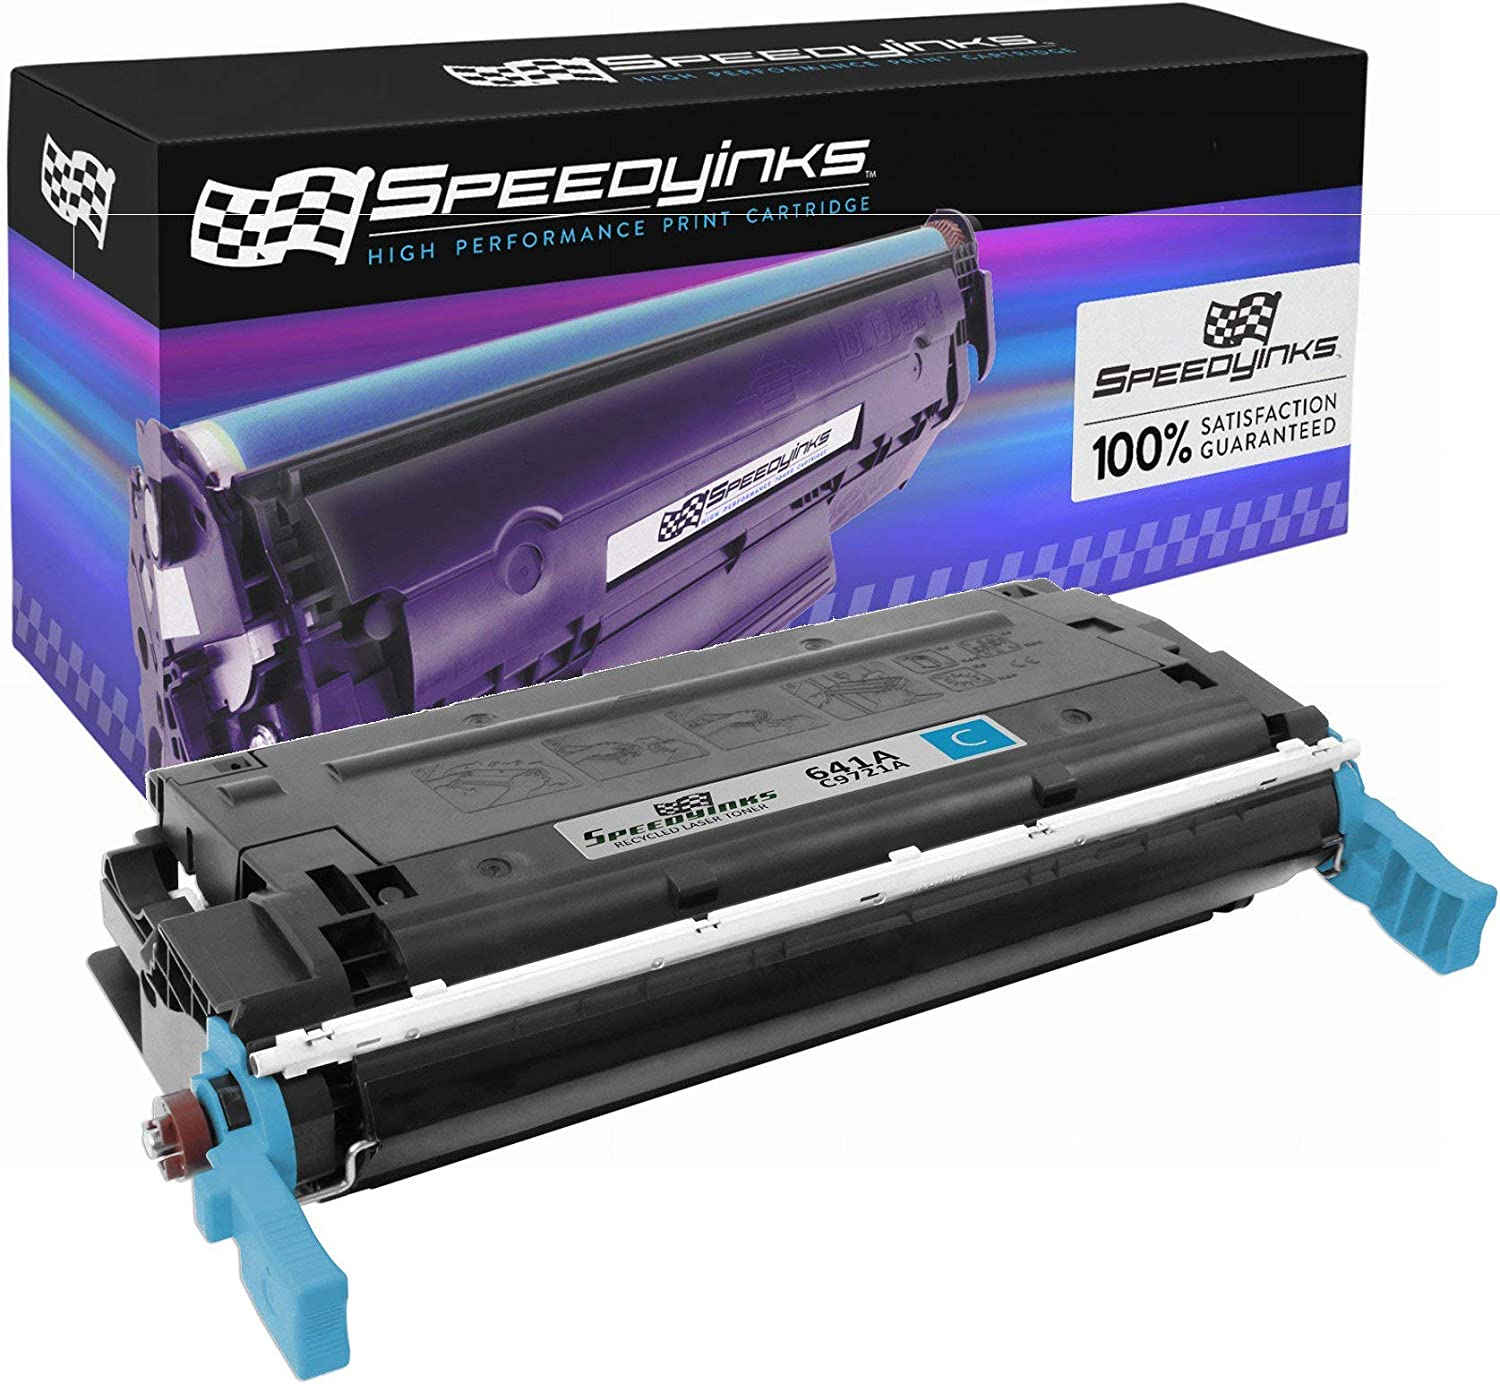 Speedy Inks Remanufactured Toner Cartridge Replacement for HP 641A C9721A (Cyan)